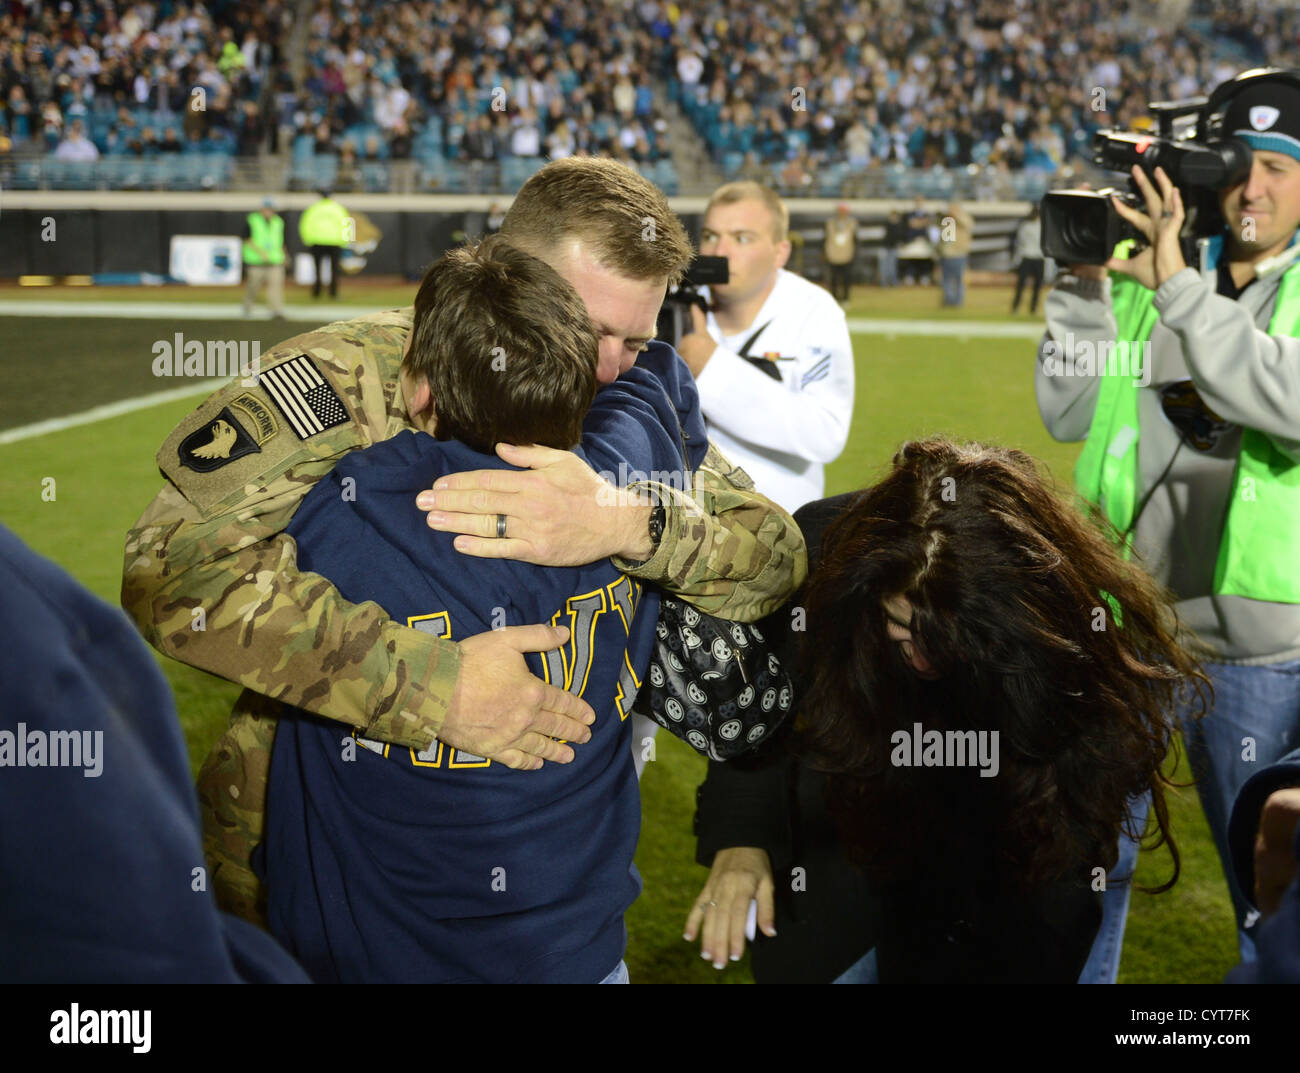 Construction mechanic first class William Cook is received by his family after surprising them at half time at EverBank - Stock Image